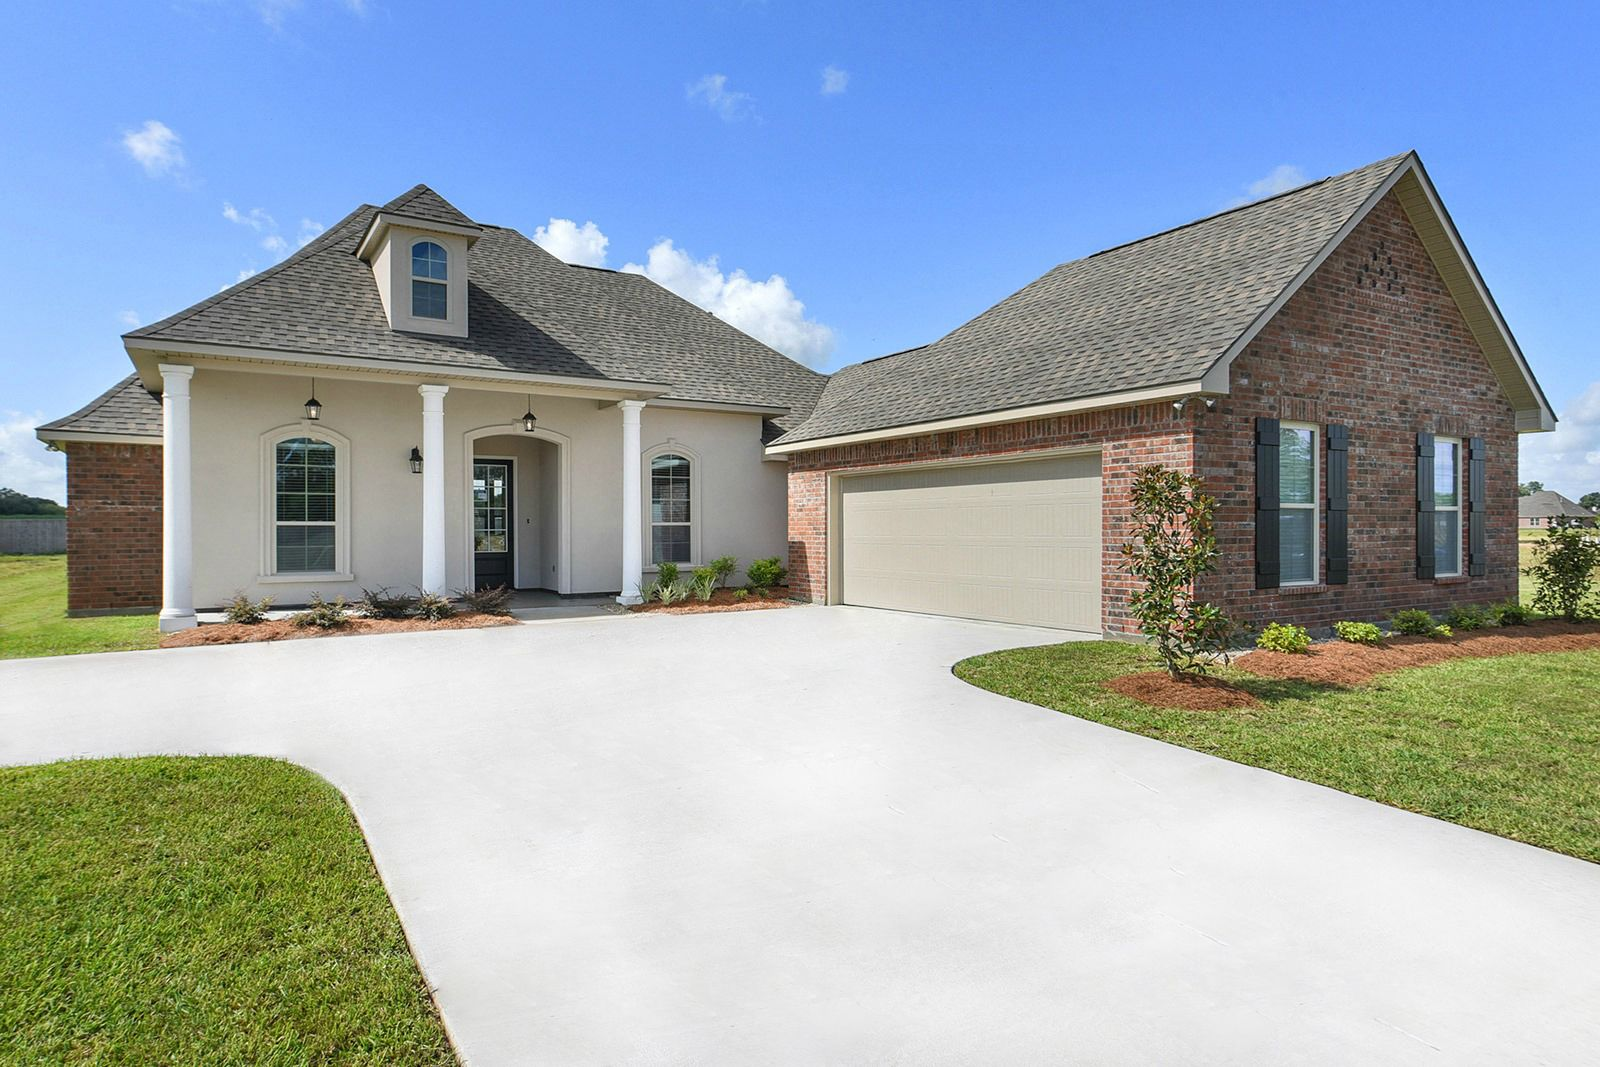 Model Home- DSLD Homes - Paige Place in Broussard:Paige Place Model Home Exterior